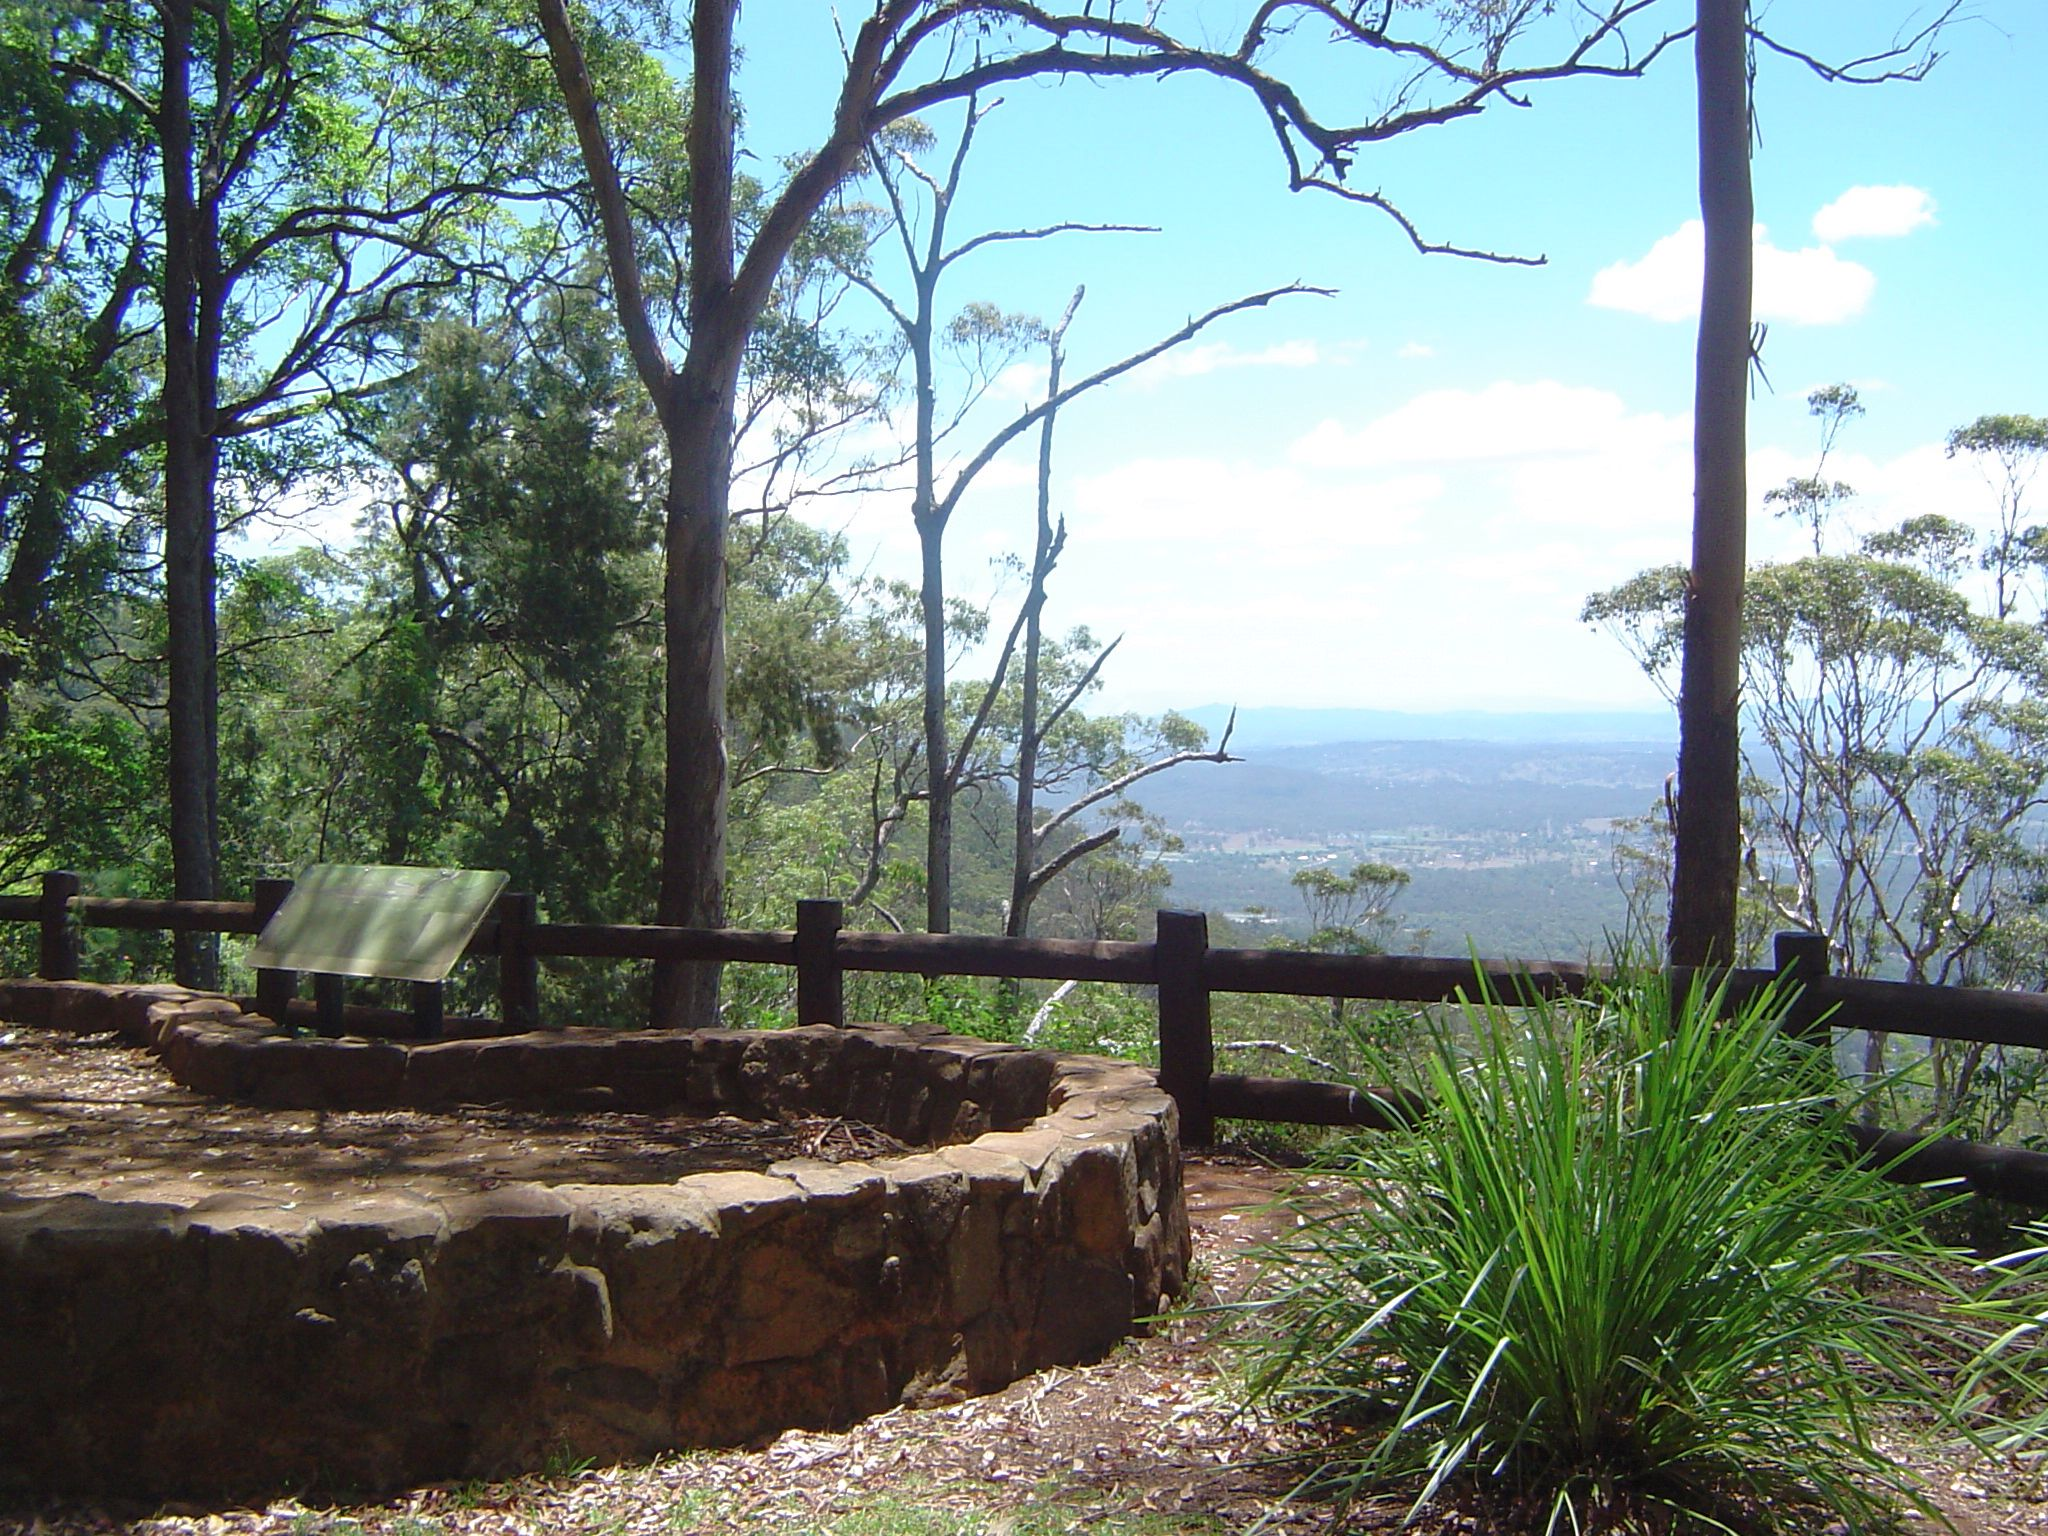 mount lookout dating In the centre of town, 25-year-old local girl nadia vazquez walked her brisbane-based boyfriend brett dendle up to the mount isa lookout, a popular dating spot vazquez, to borrow from mayor malony's book of ornithological descriptors for women, was.